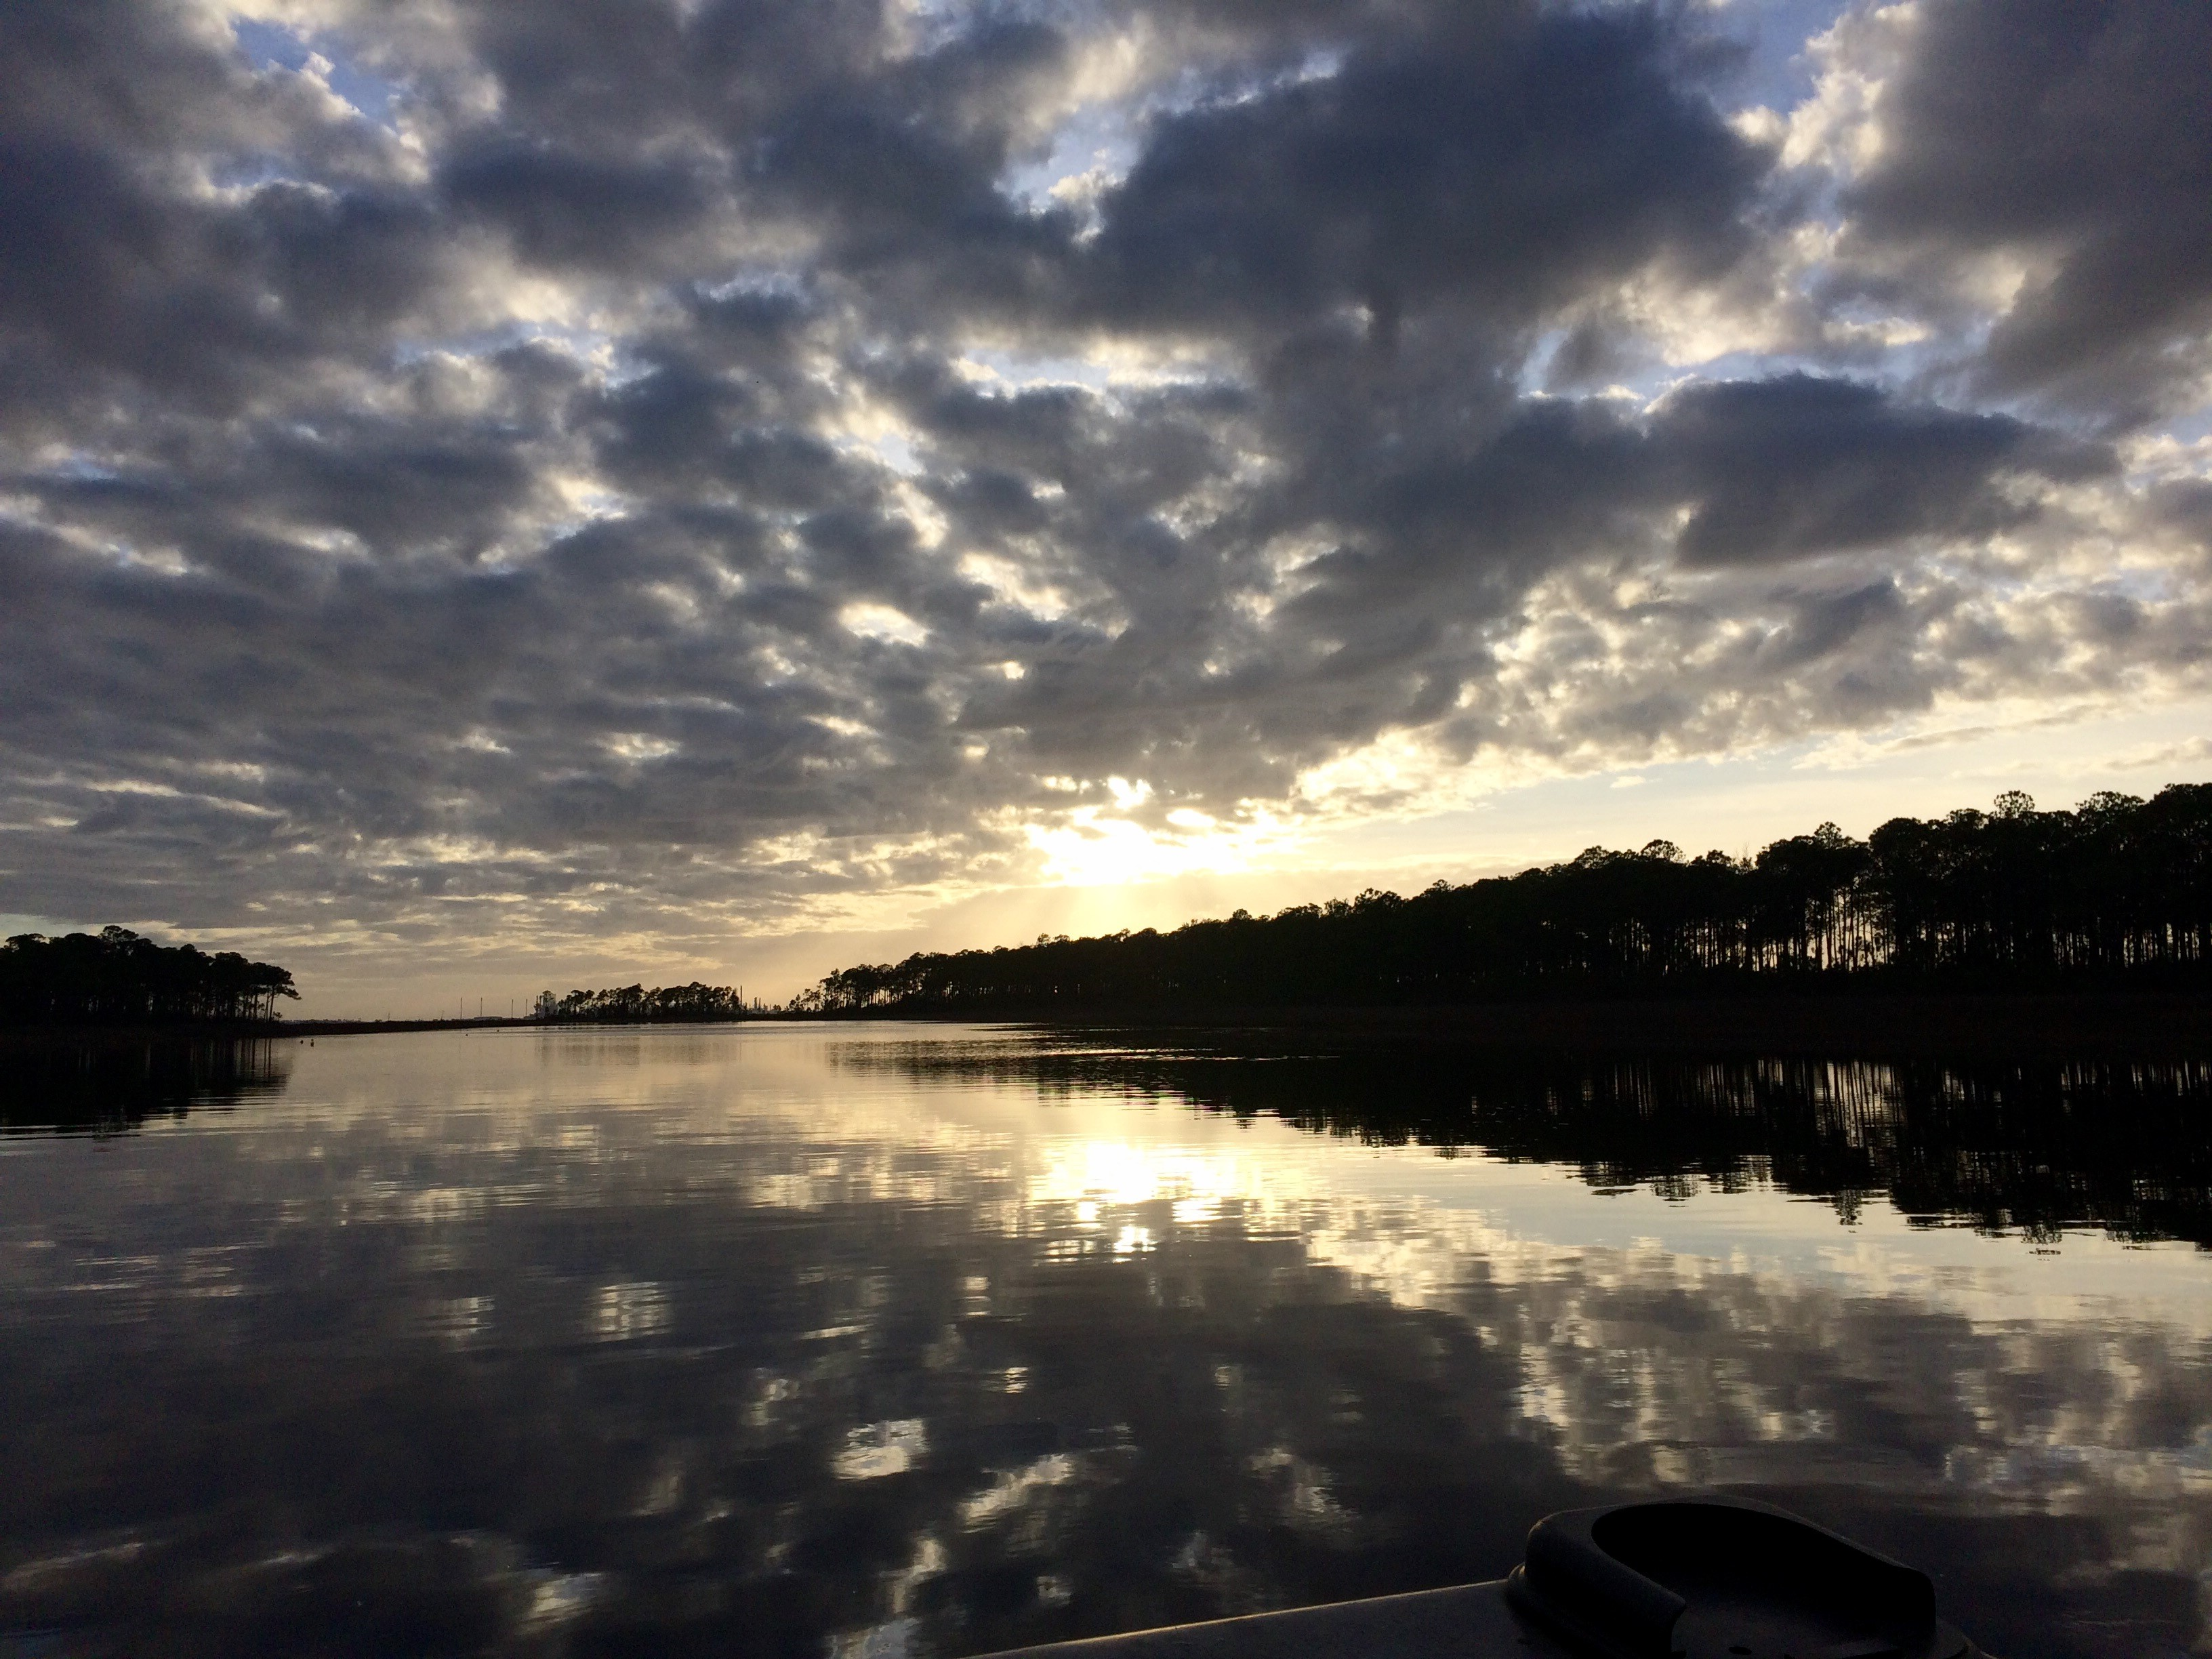 The sun is rising in Grand Bay National Estuarine Research Reserve.